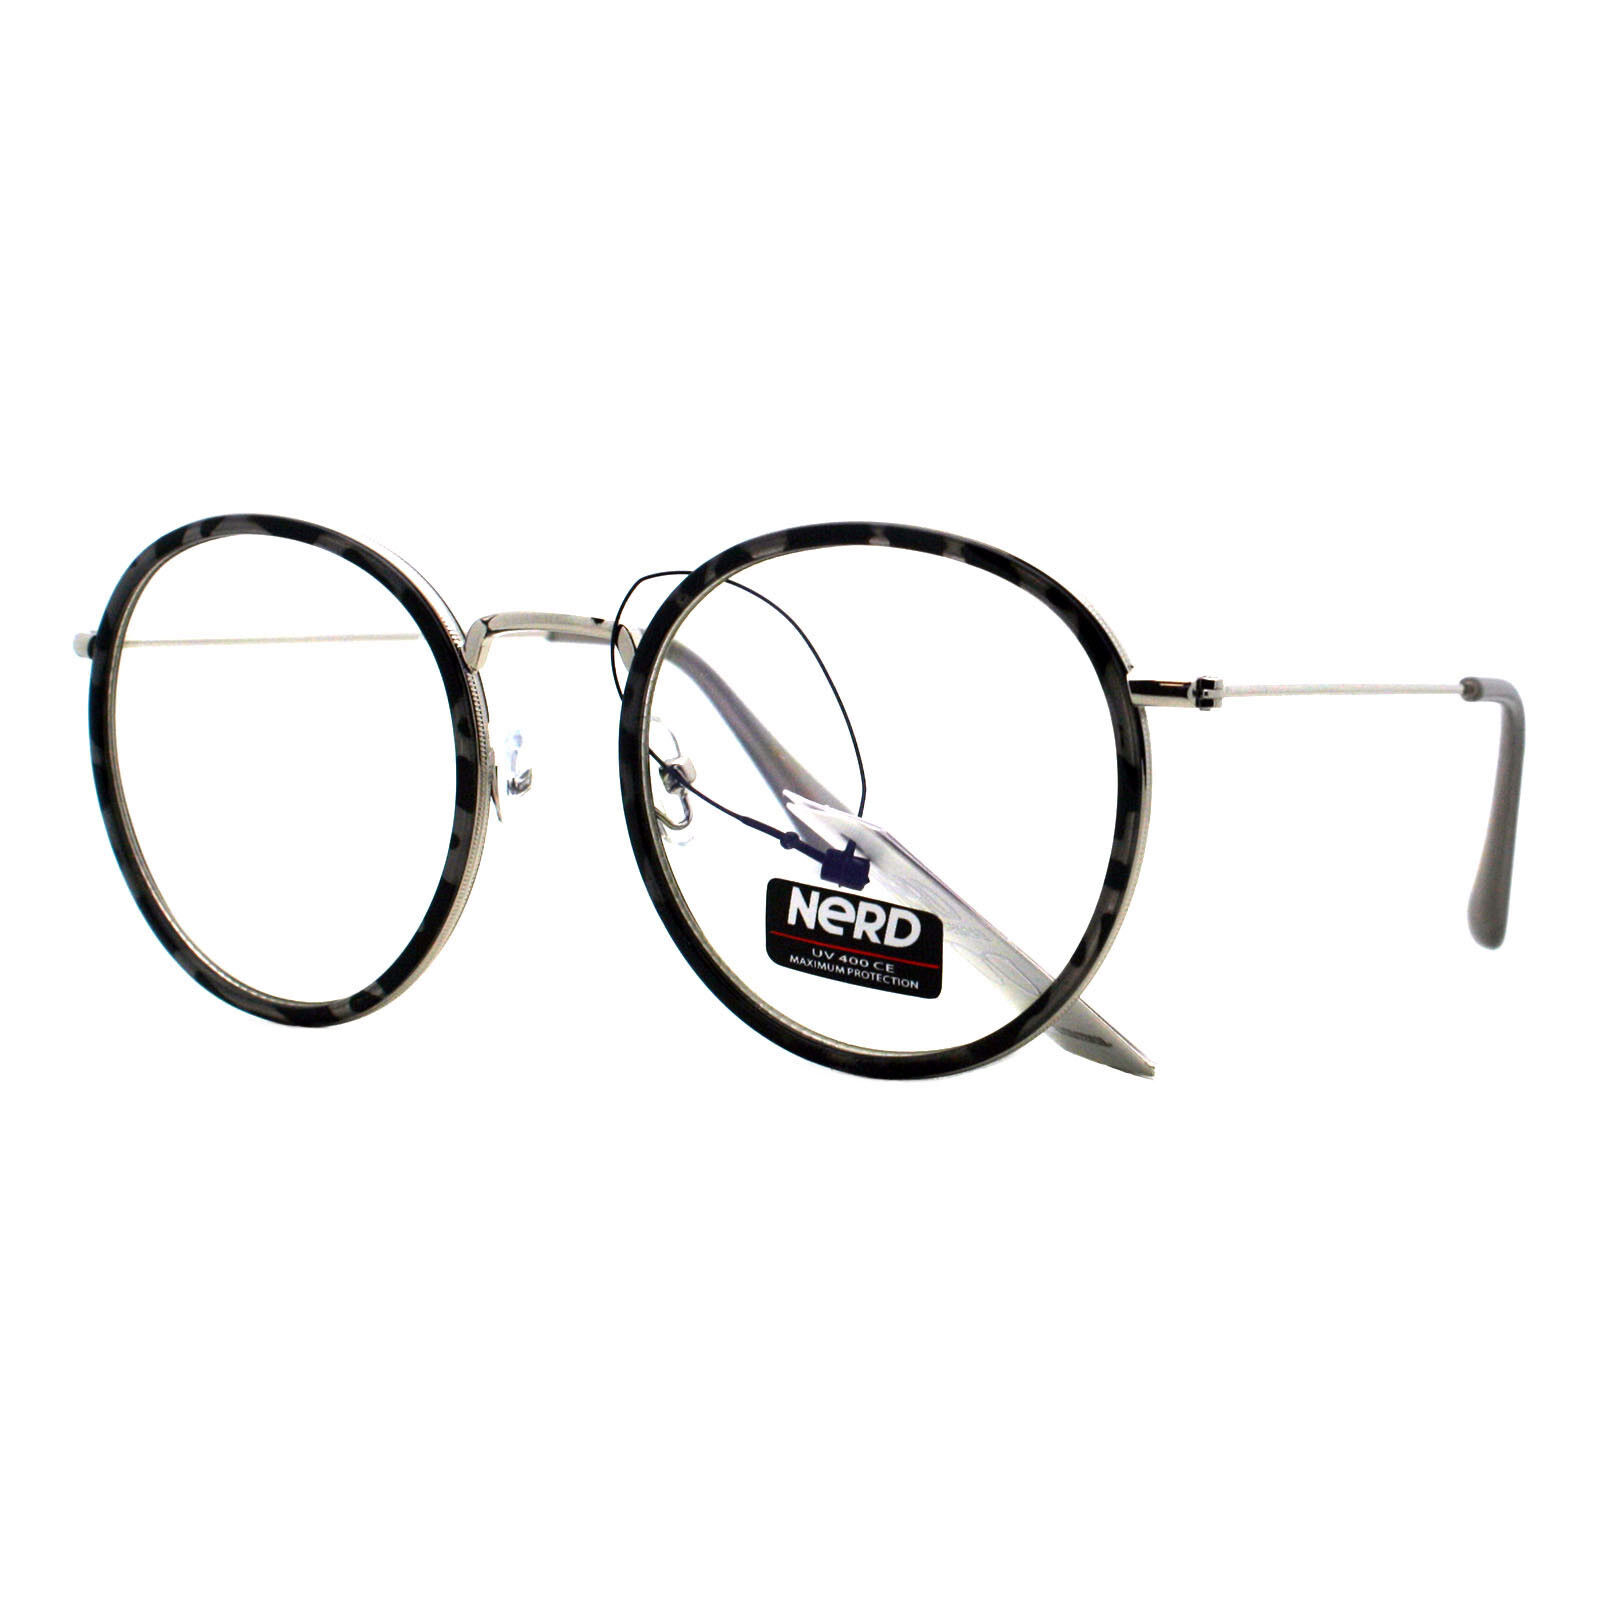 673b335b10 Vintage Fashion Clear Lens Glasses Round Double Frame Eyeglasses UV 400